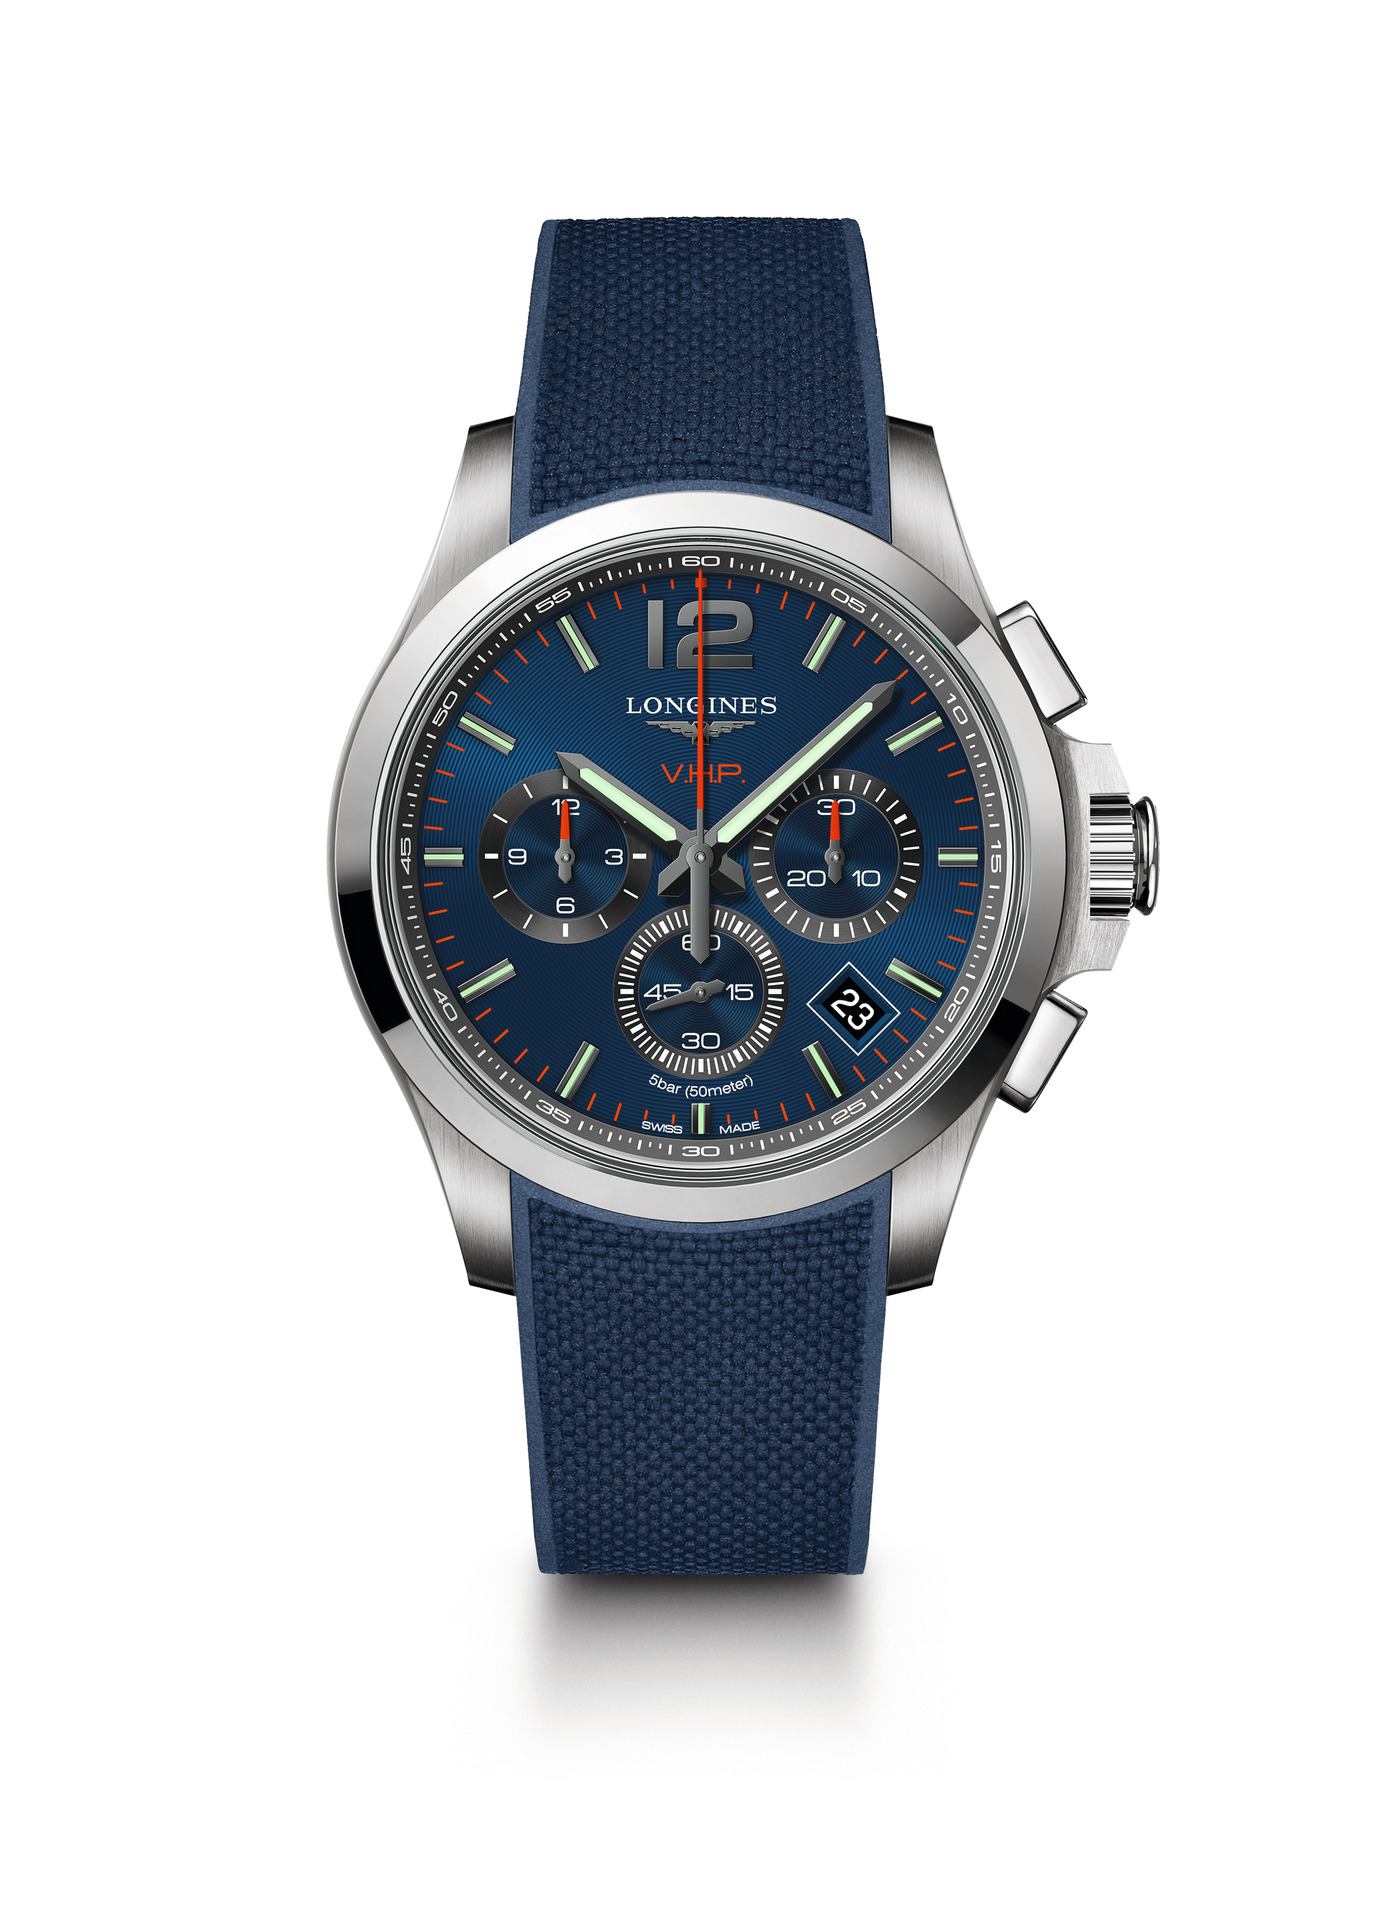 Longines Conquest V.H.P. Chronograph Watch 1